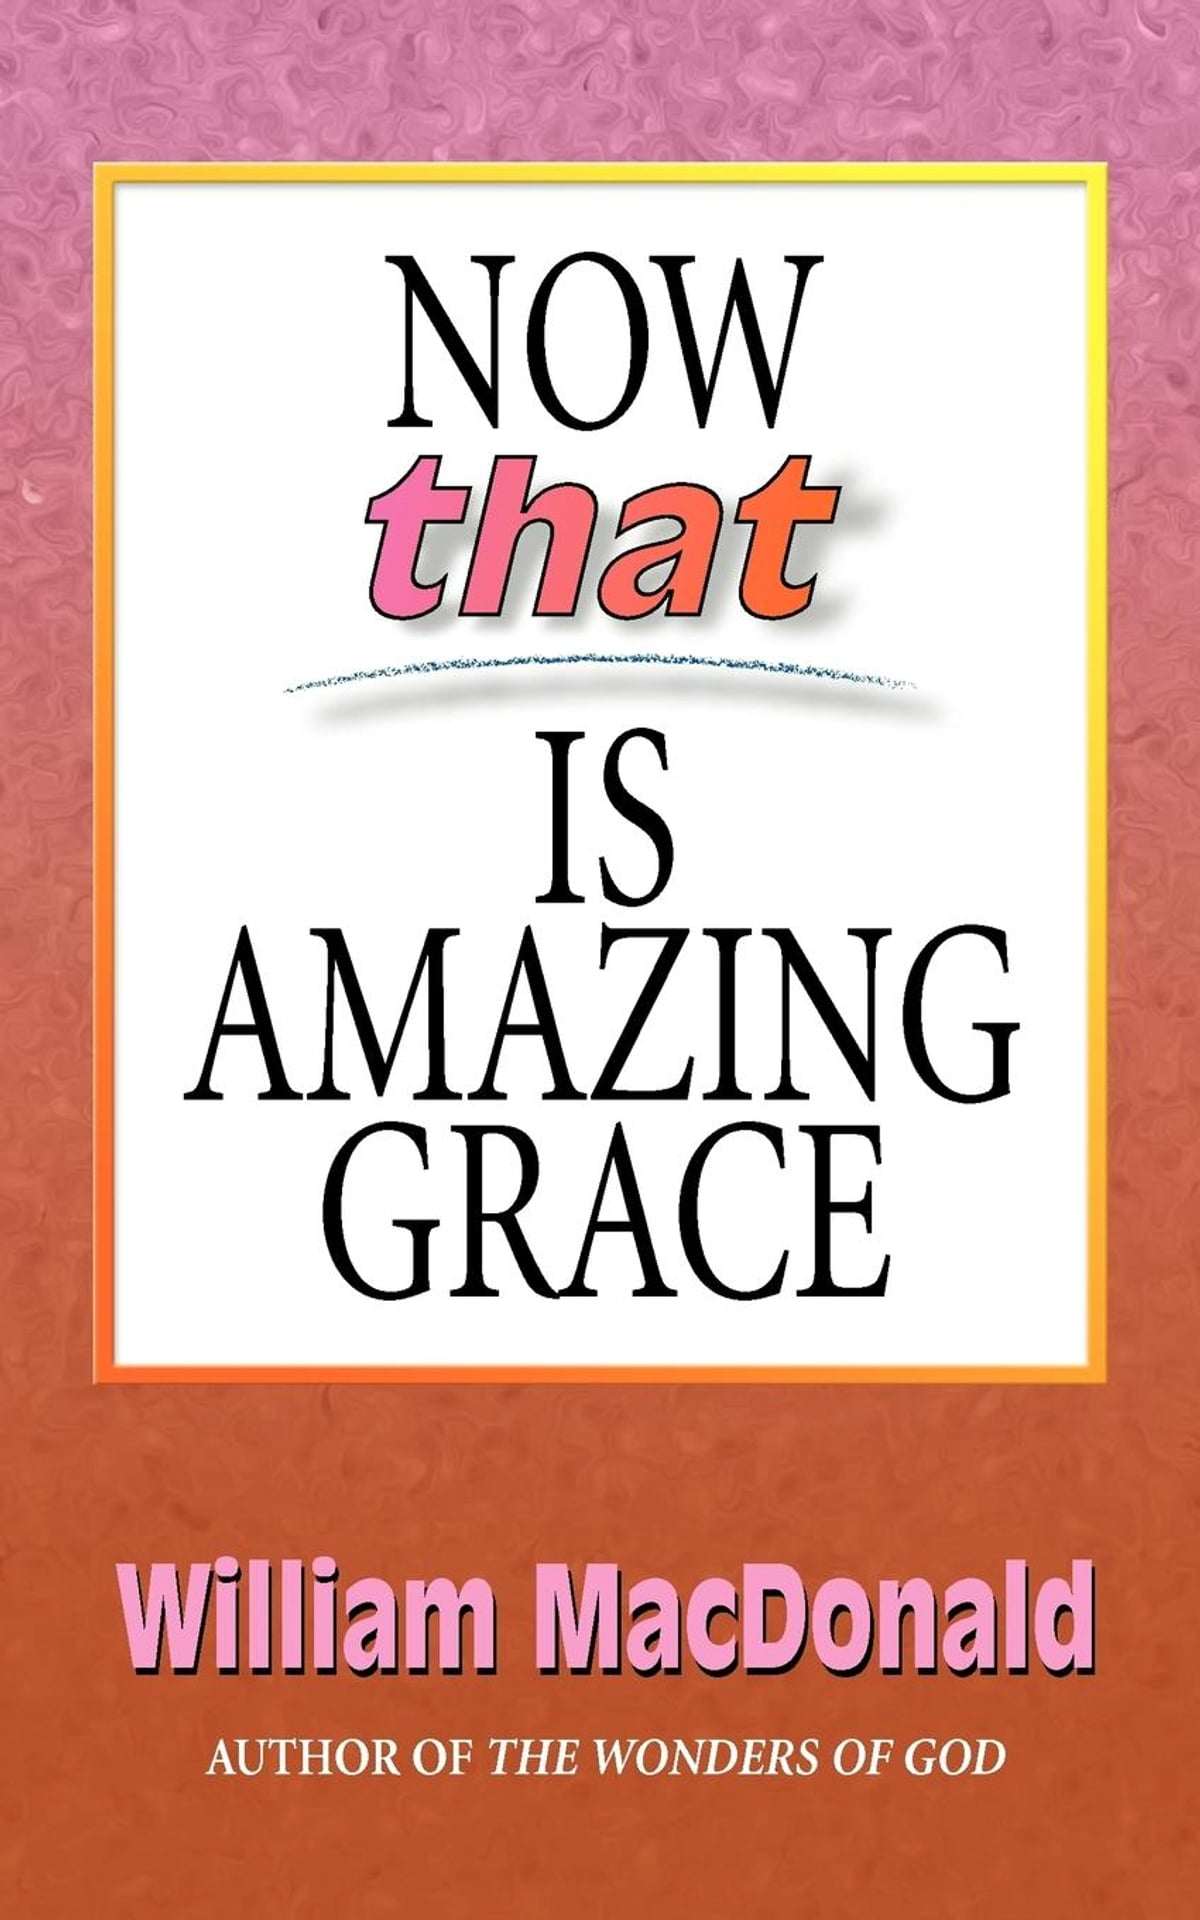 Now that Is Amazing Grace eBook by William MacDonald - 9781927386545 |  Rakuten Kobo